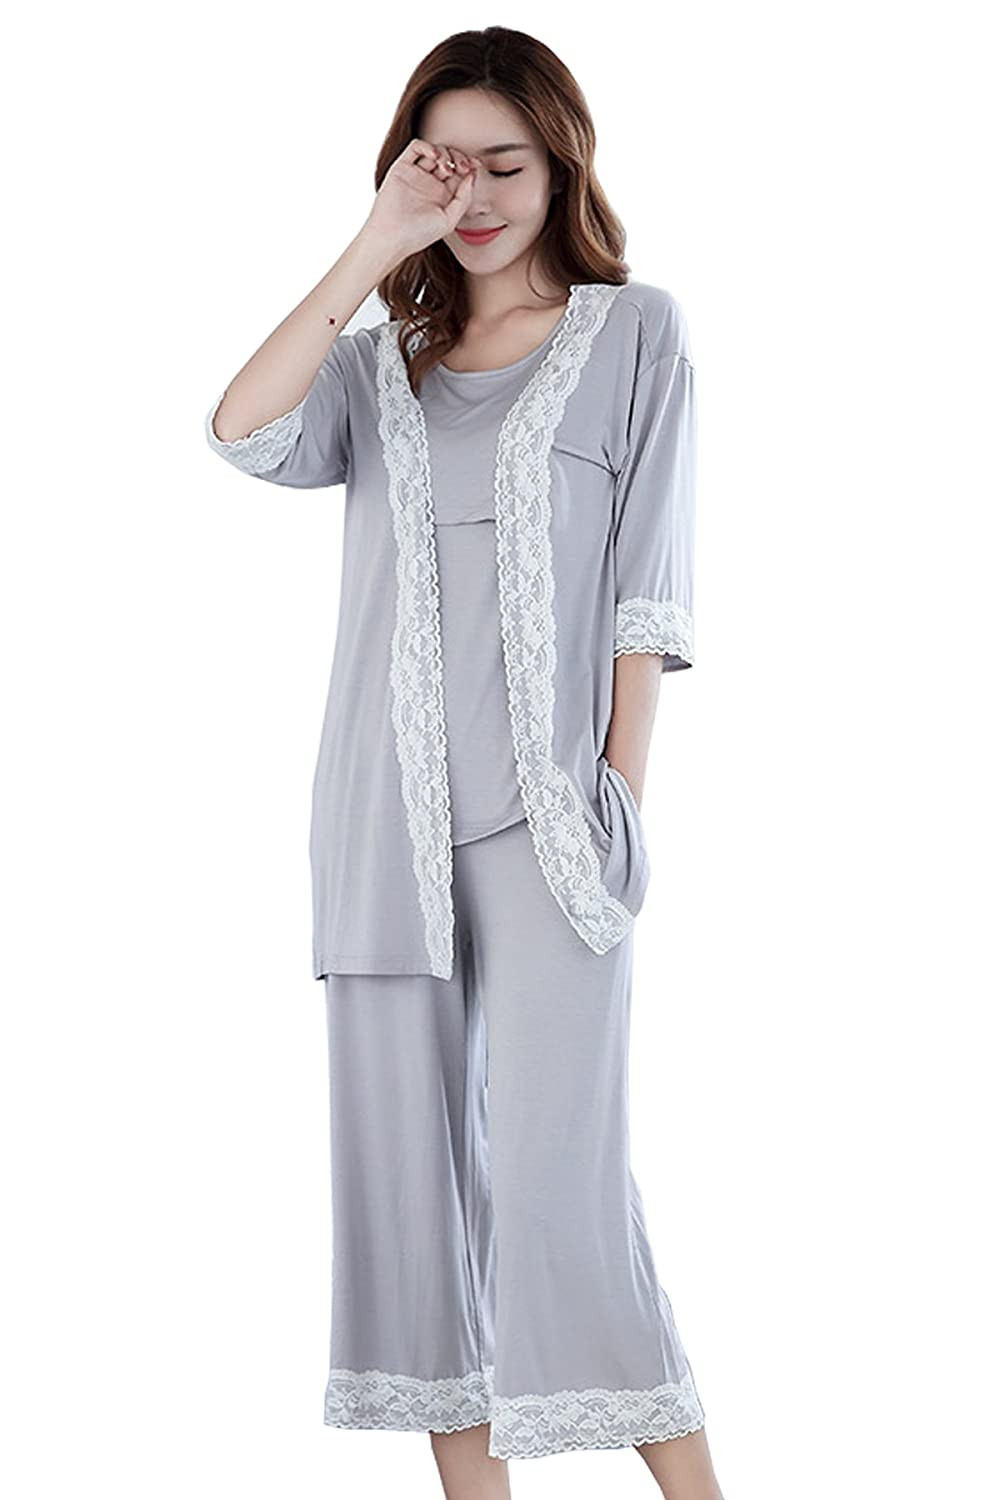 05bbe47e164e2 Epinmammy Womens 3 Piece Maternity and Nursing Pajama Set Lace Details  Featuring Nursing Top Pants and ...